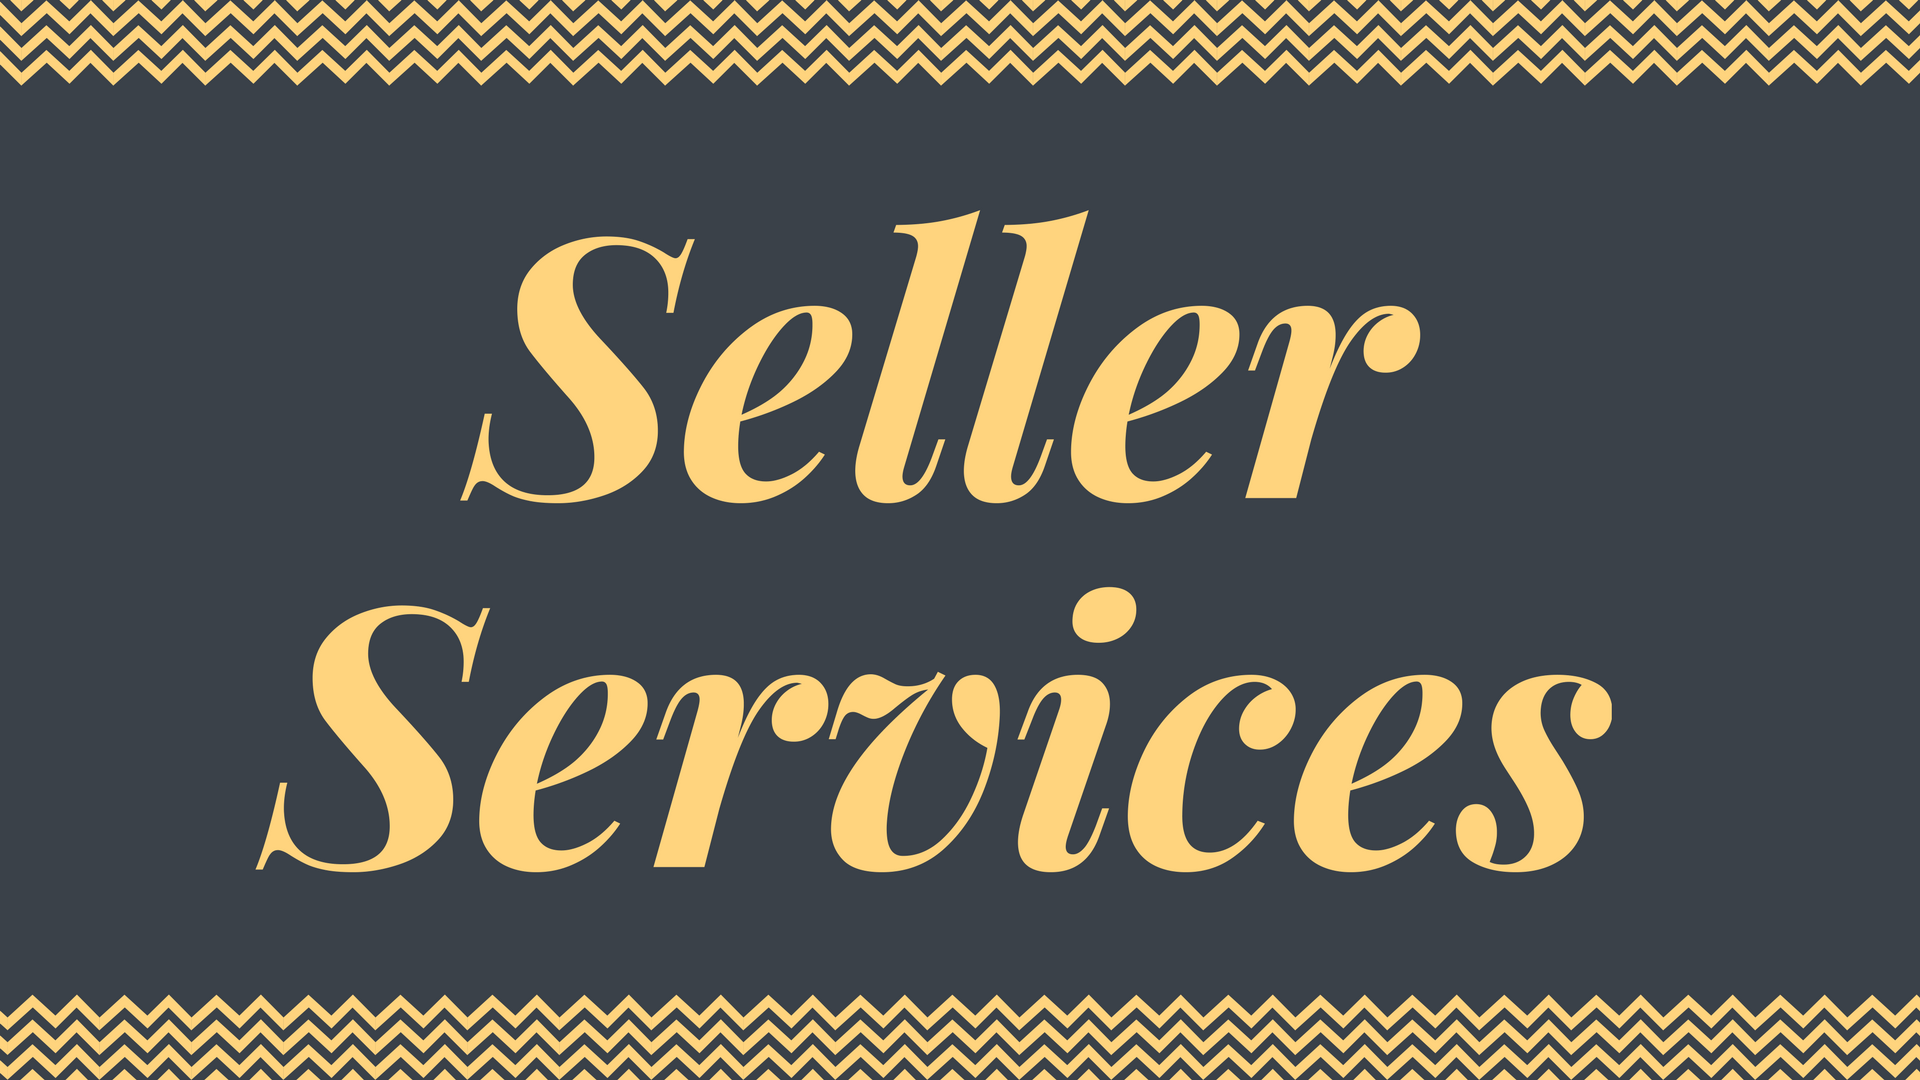 Seller Services